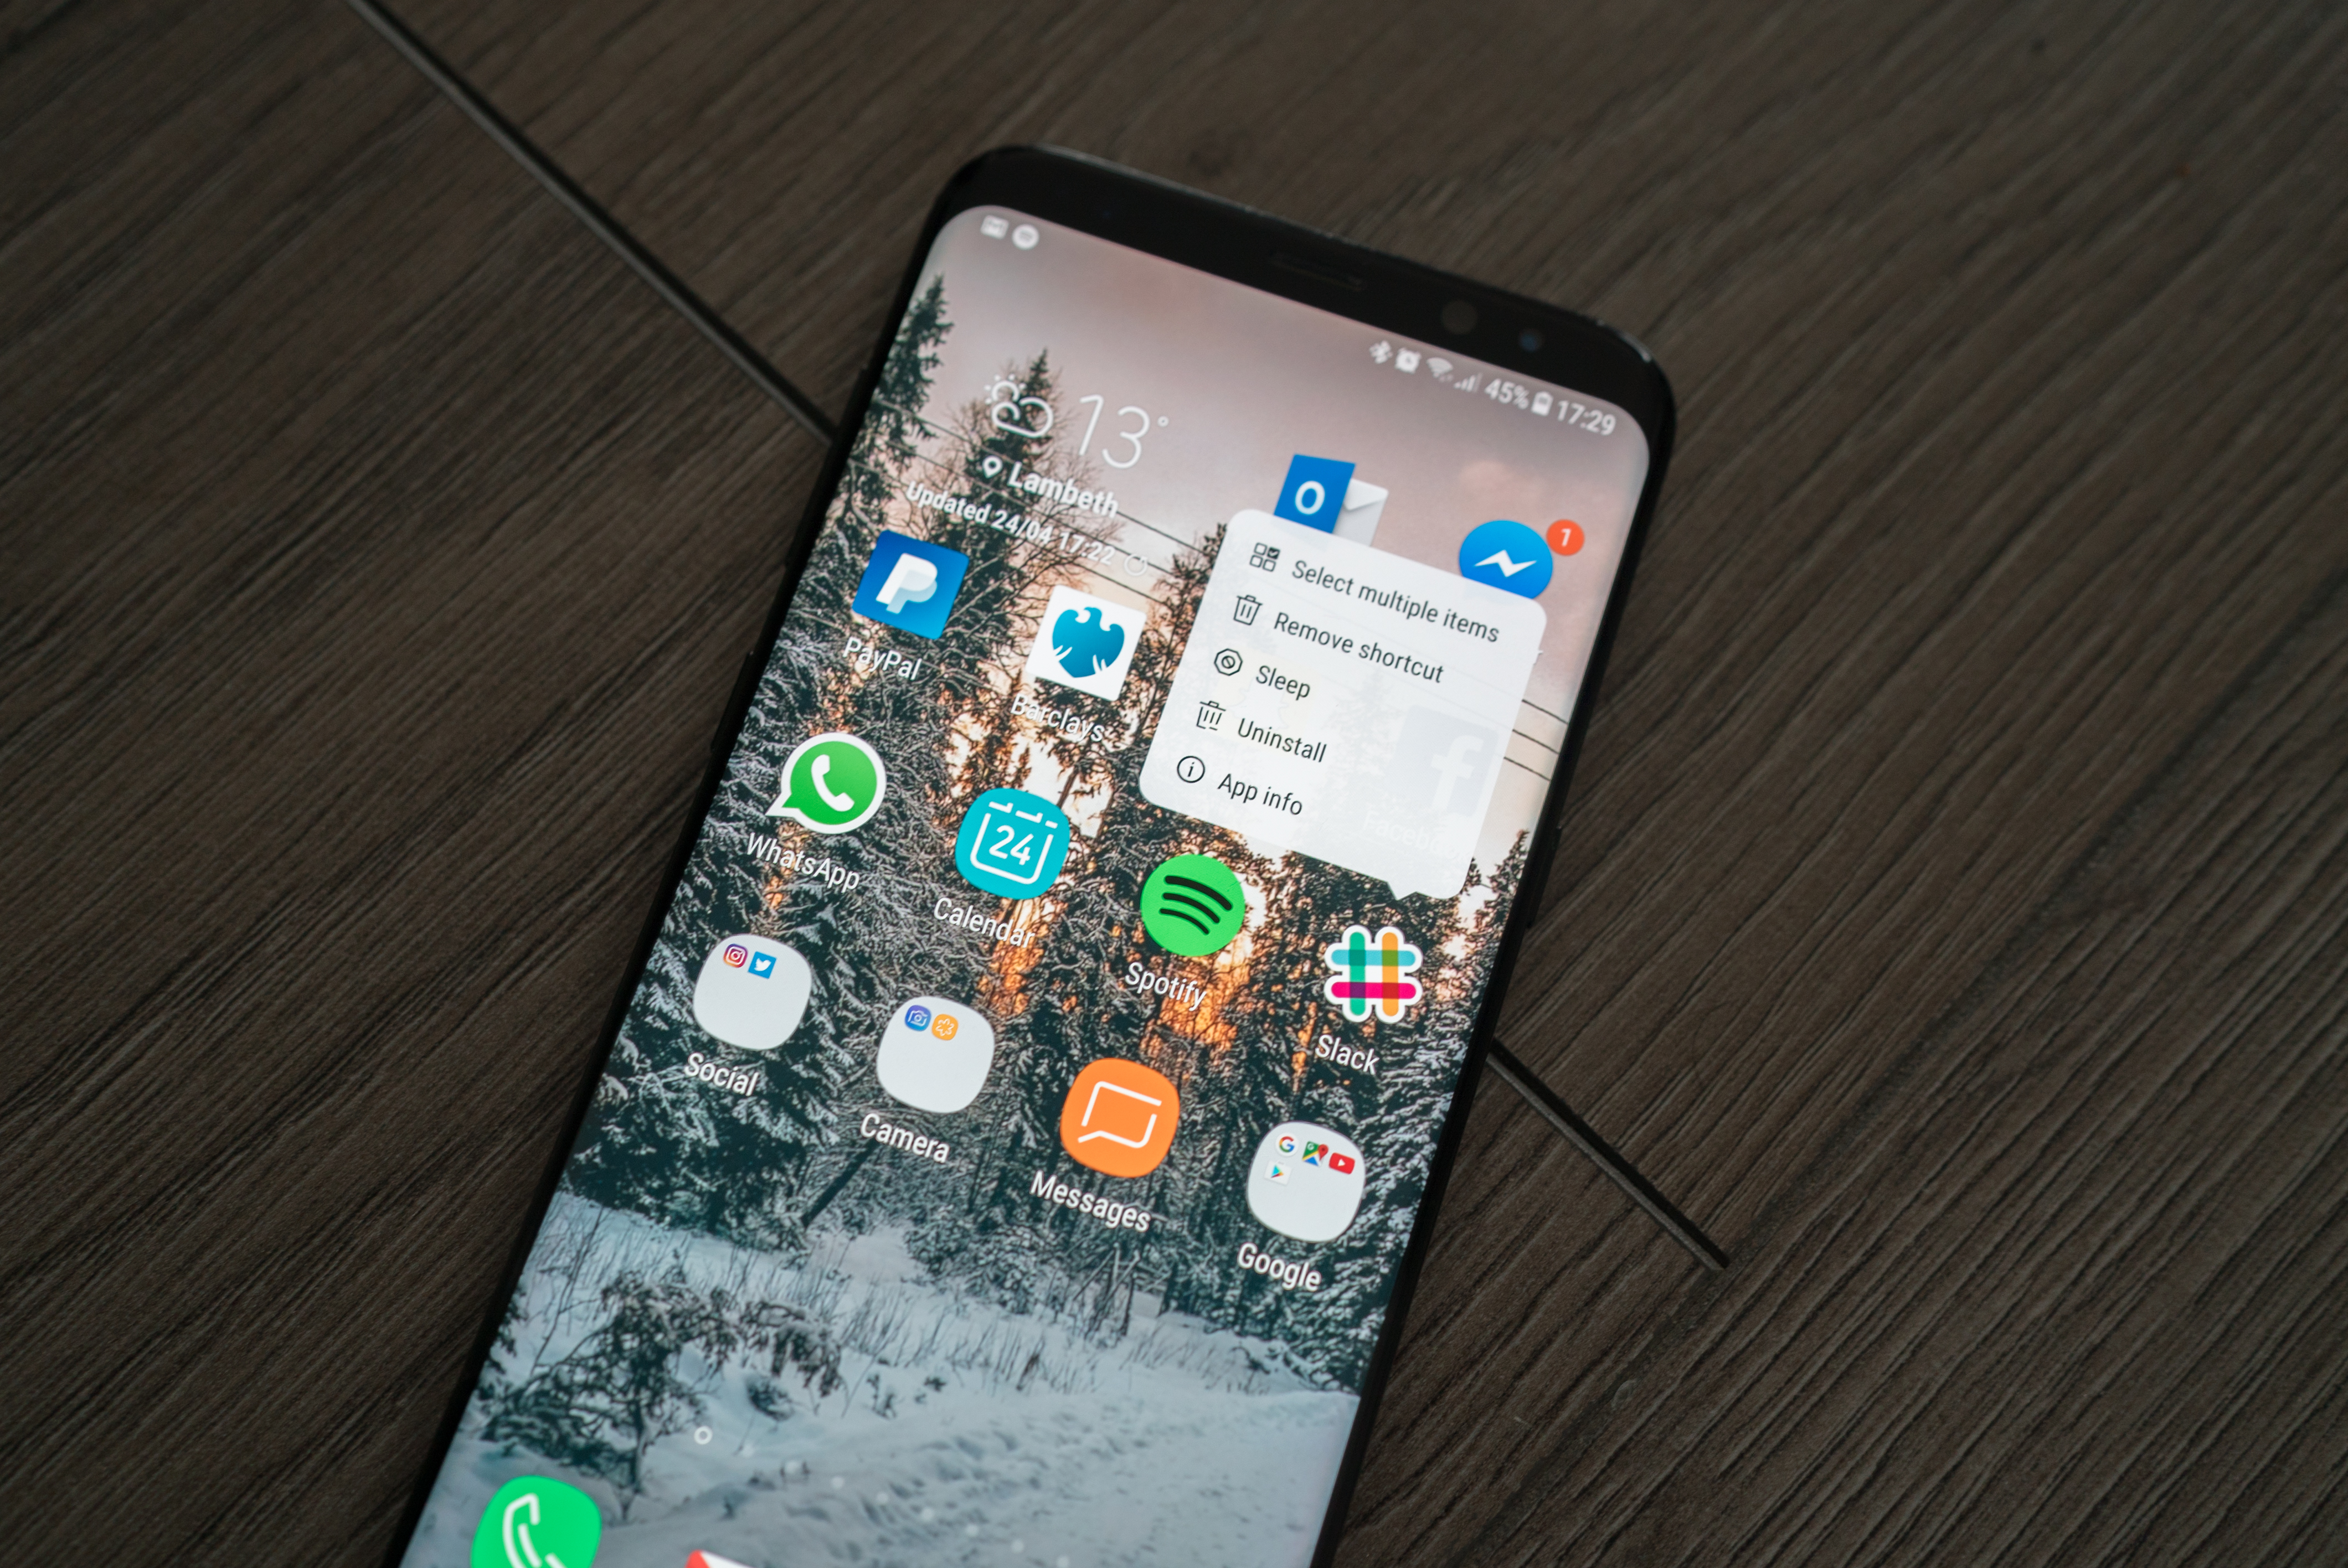 Samsung Galaxy S8+ Review: Its Almost Perfect DSC03352